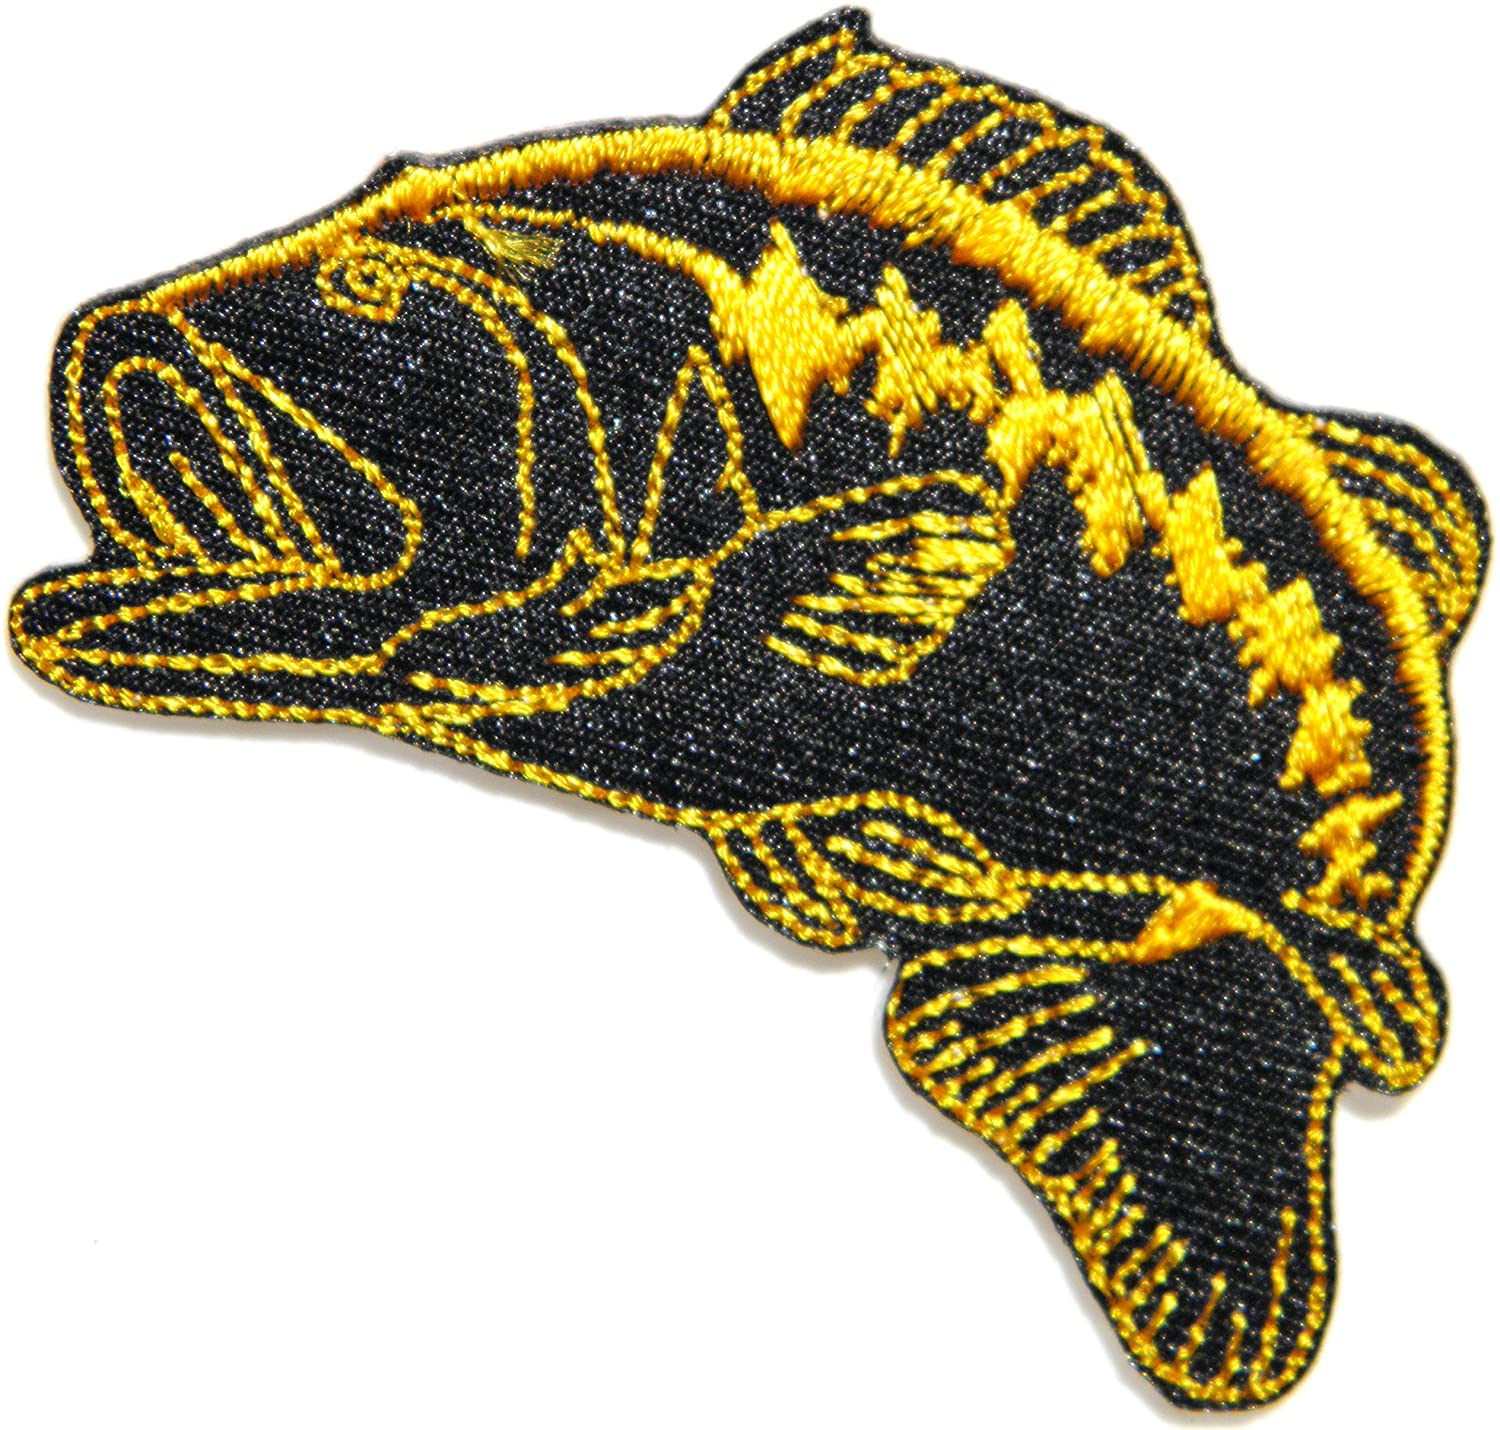 Bass Fishing Lure Hook Logo Jacket T shirt Patch Sew Iron on Embroidered Badge Sign Costum